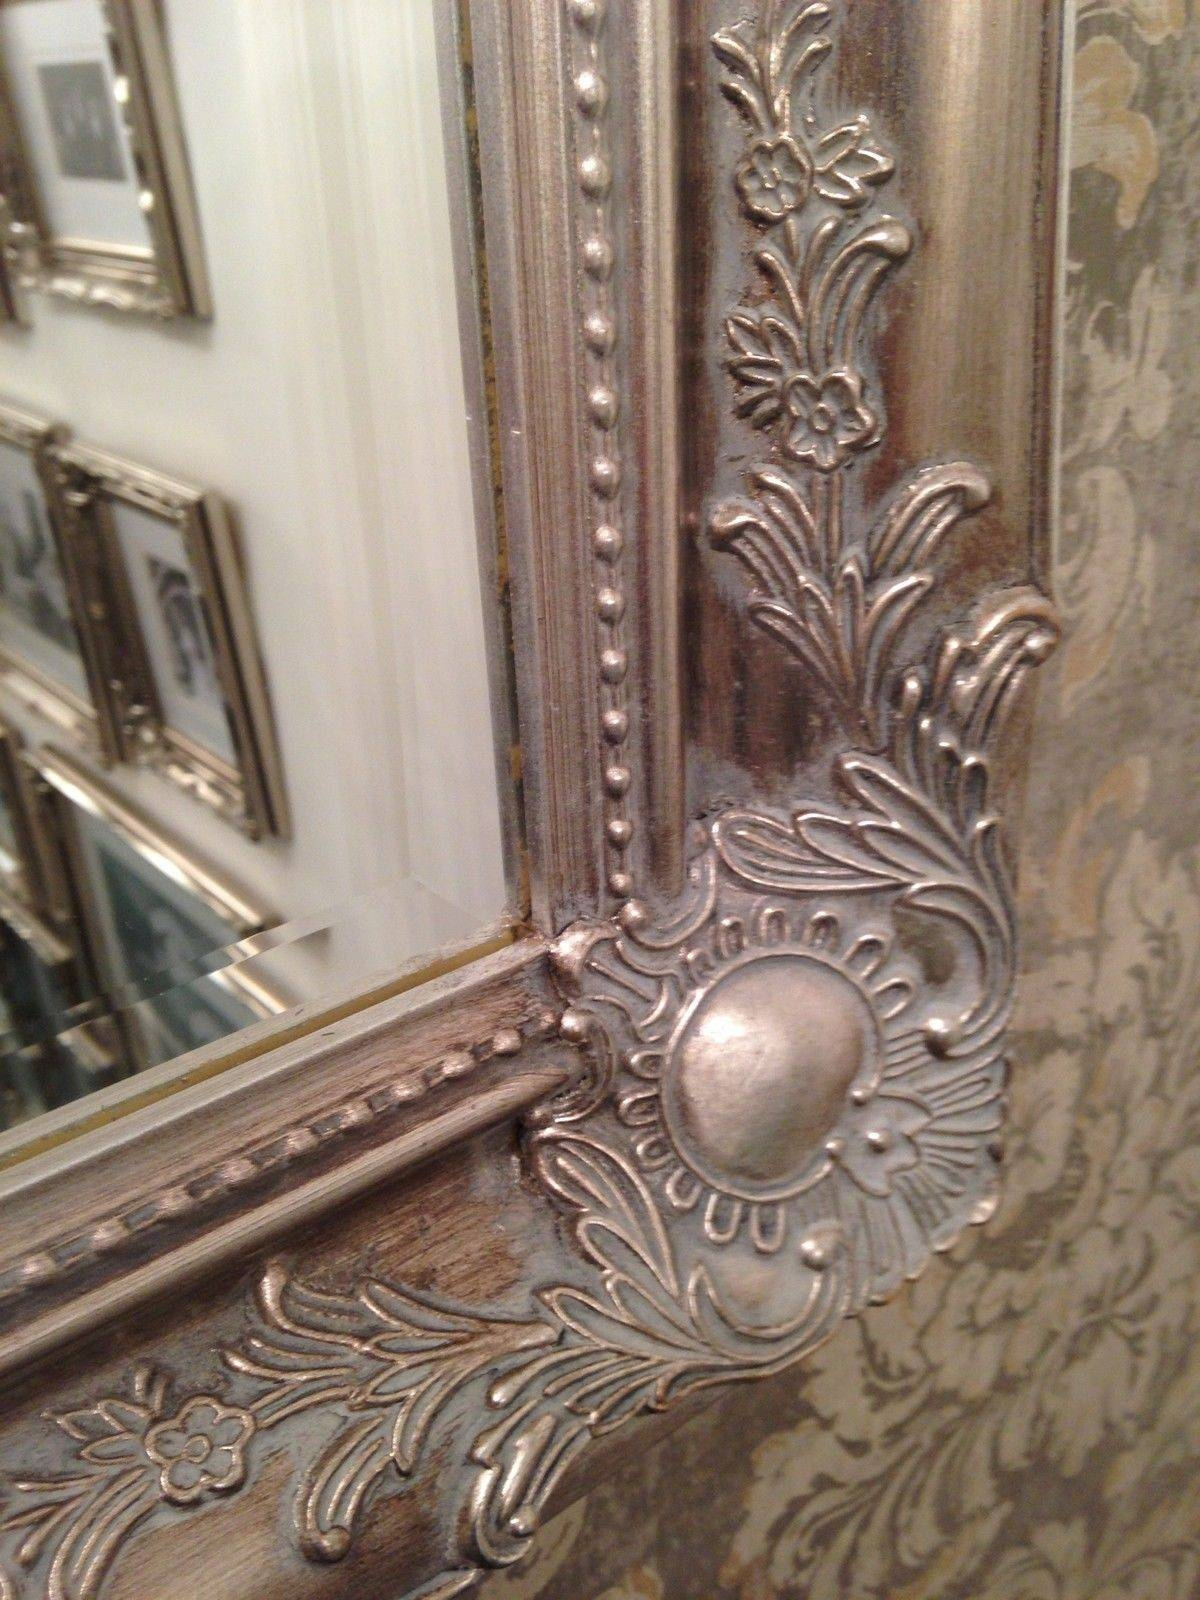 X Large Antique Silver Shabby Chic Ornate Decorative Wall Mirror with regard to Large Antique Silver Mirrors (Image 14 of 15)